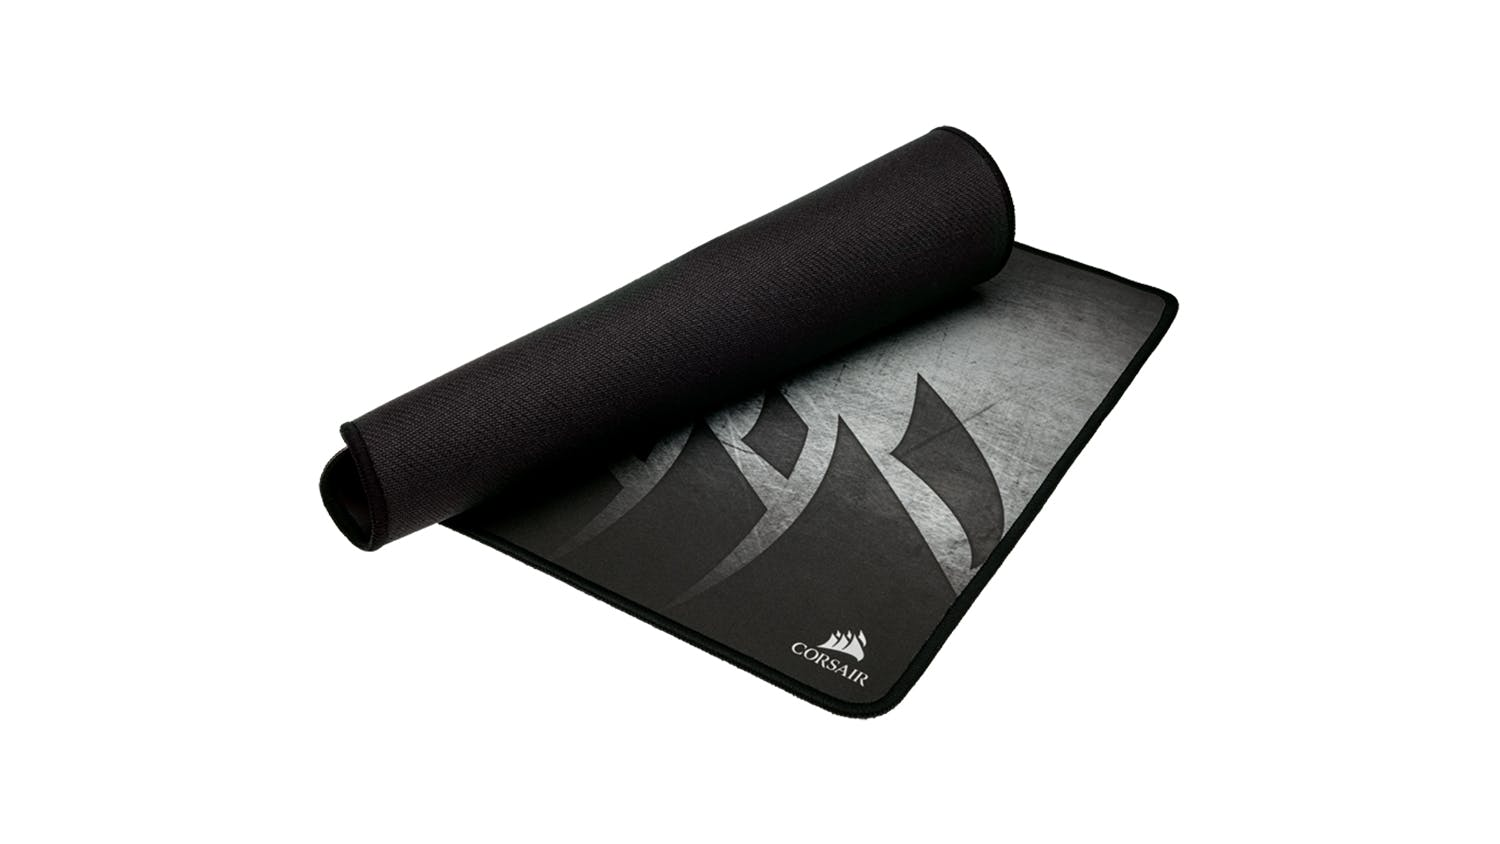 CORSAIR MM300 Anti-Fray Cloth Gaming Mouse Pad - Extended